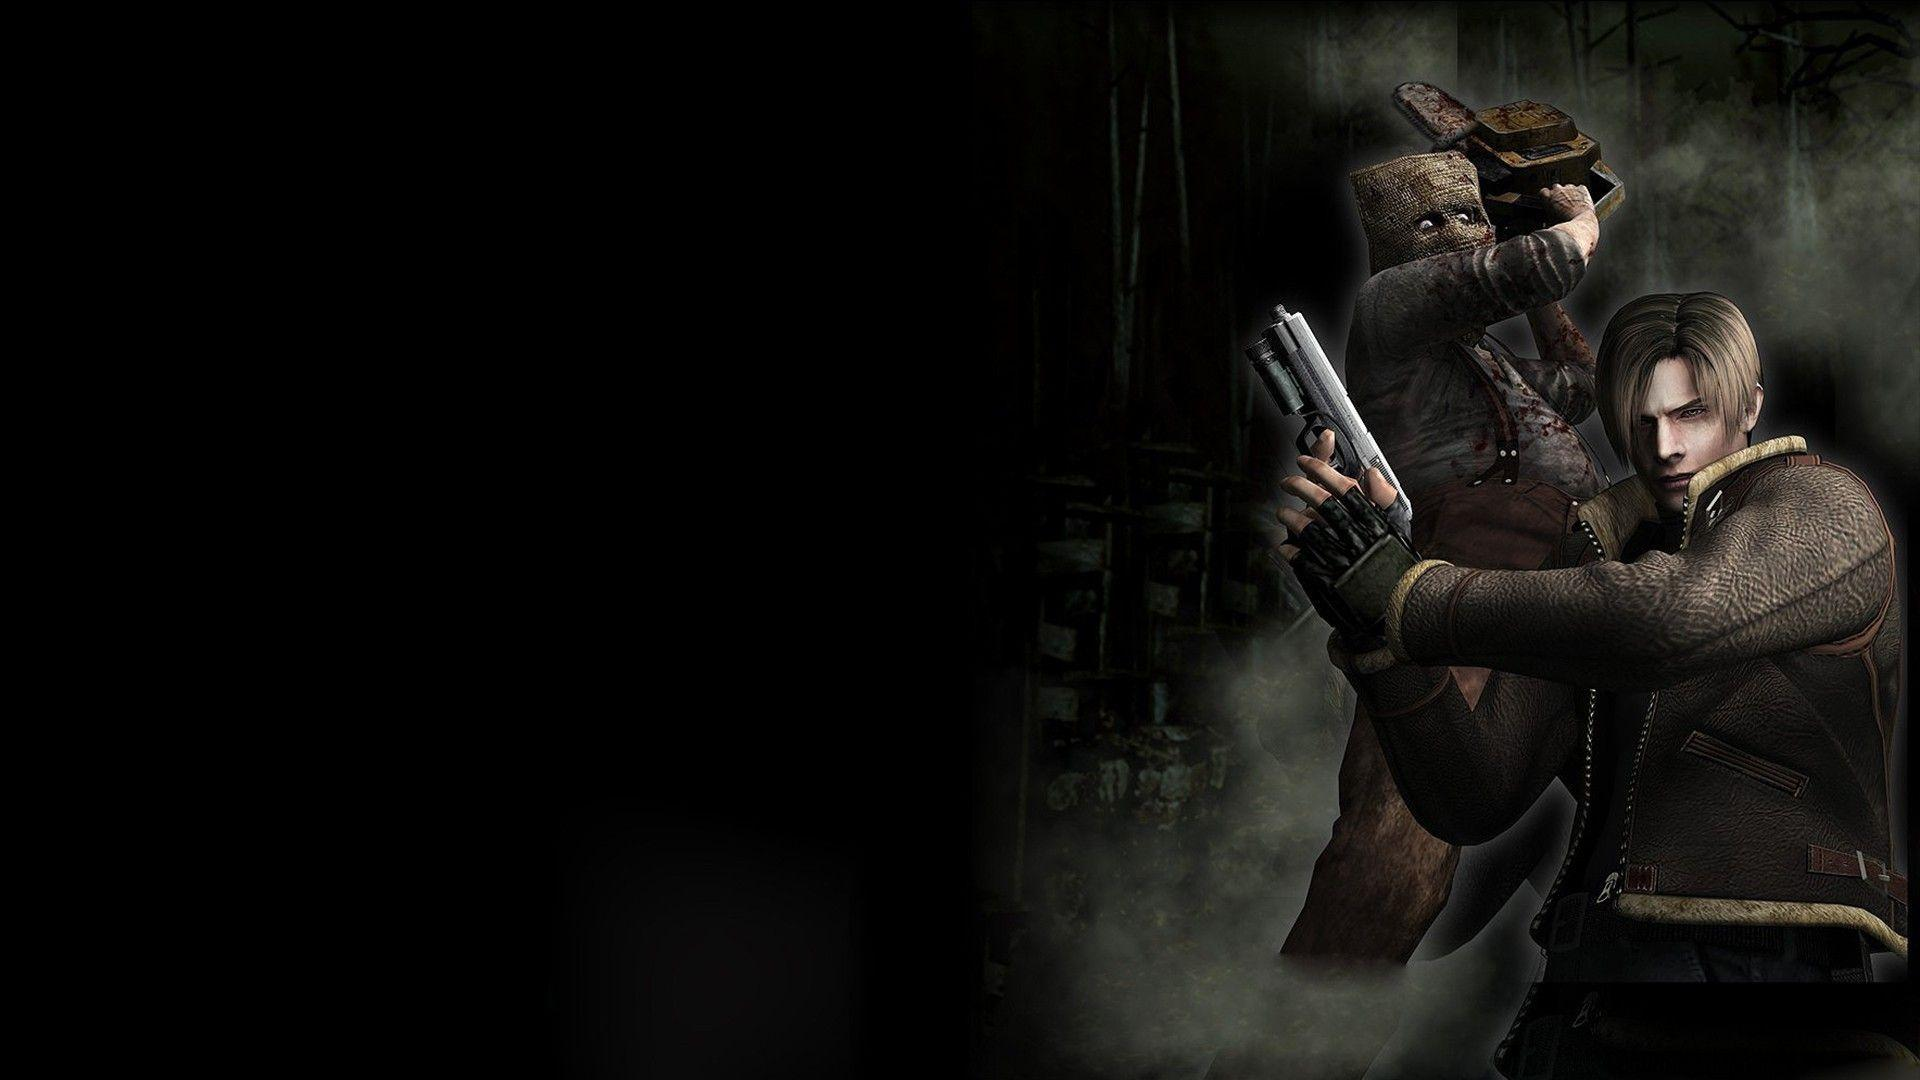 Resident Evil 4 Wallpapers, Gorgeous HDQ Resident Evil 4 Photos